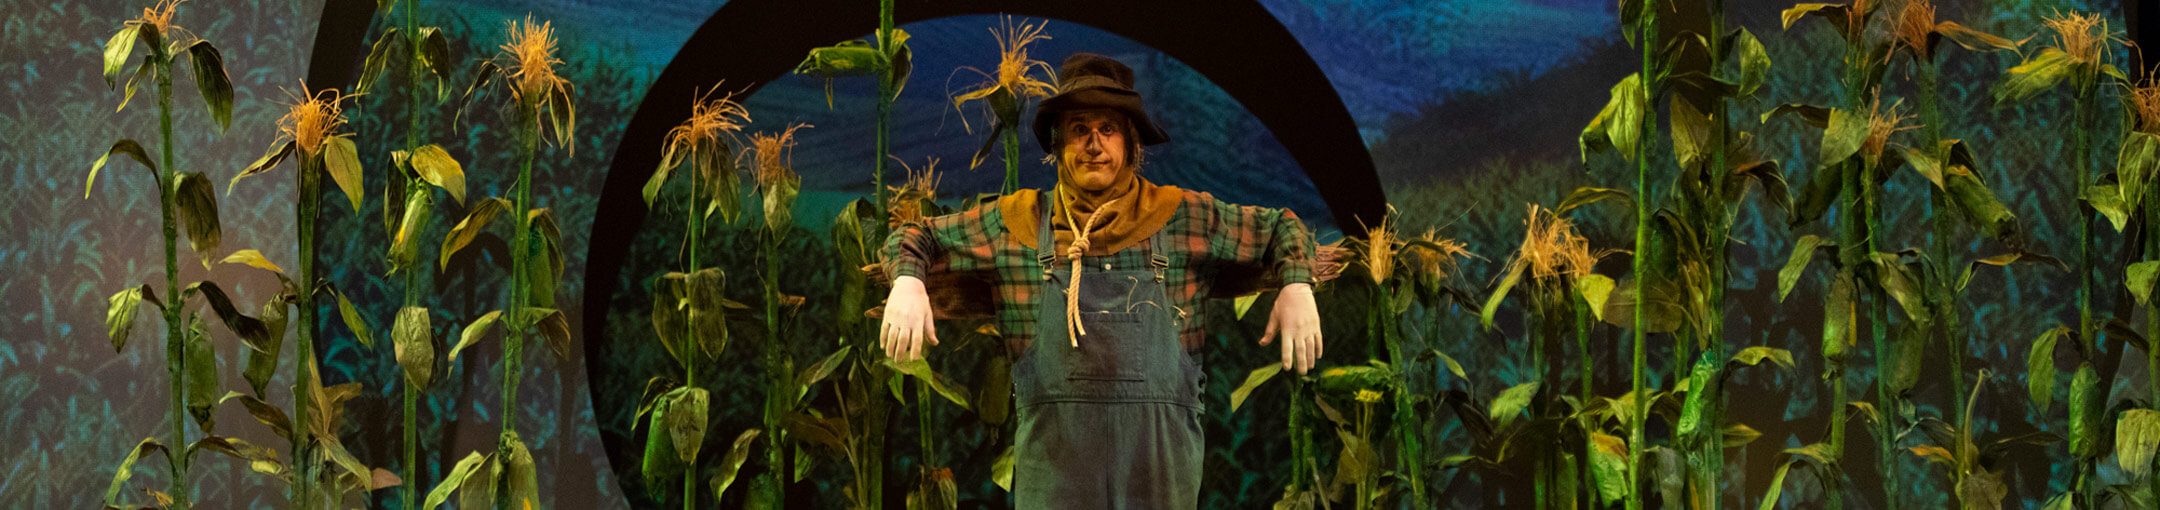 An RIT actor playing the part of the scarecrow from the Wizard of Oz.